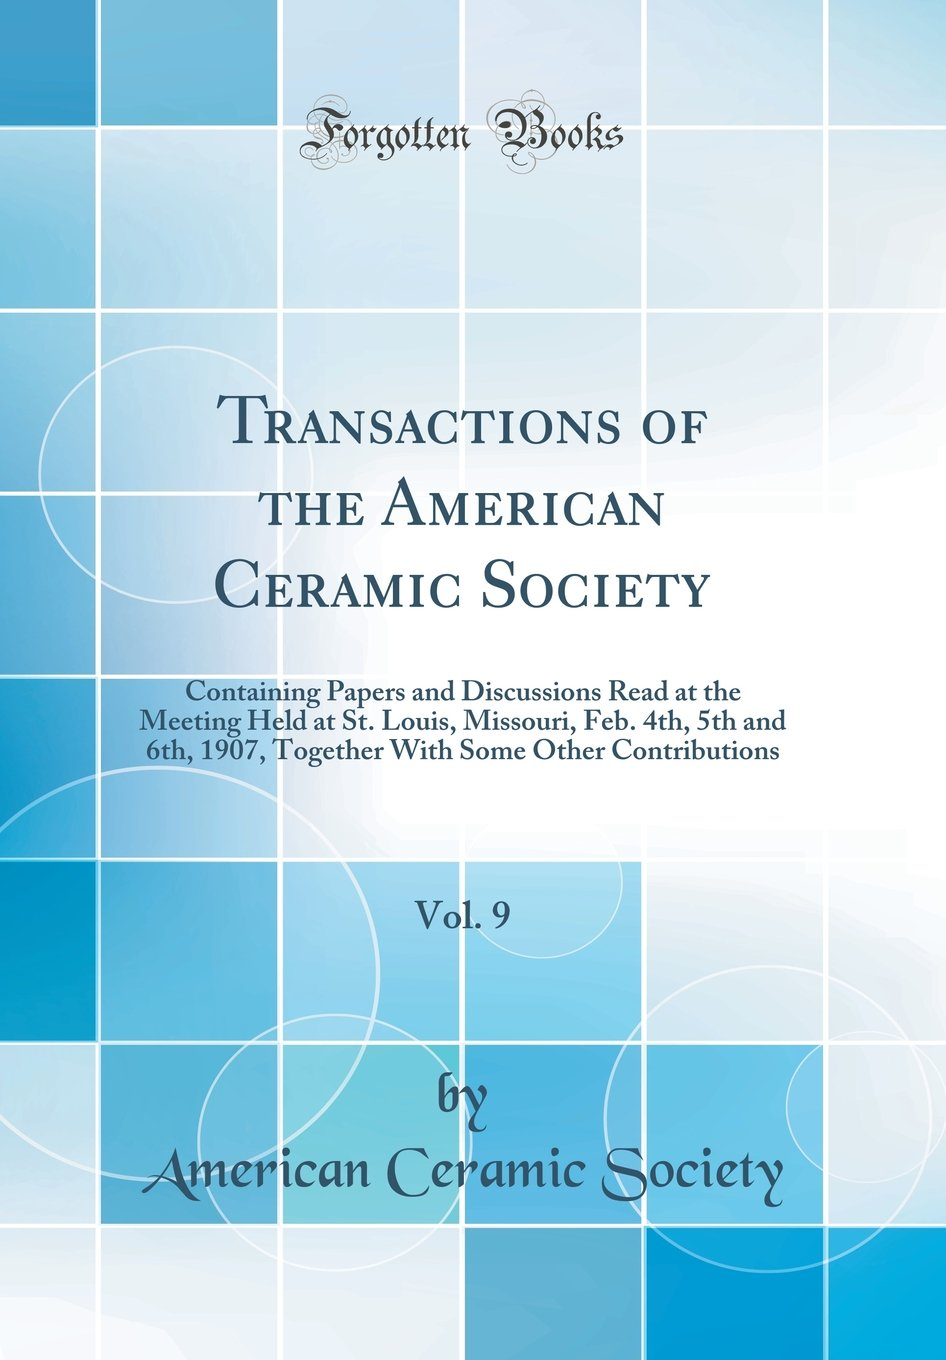 Transactions of the American Ceramic Society, Vol. 9: Containing Papers and Discussions Read at the Meeting Held at St. Louis, Missouri, Feb. 4th, 5th ... Some Other Contributions (Classic Reprint) ebook